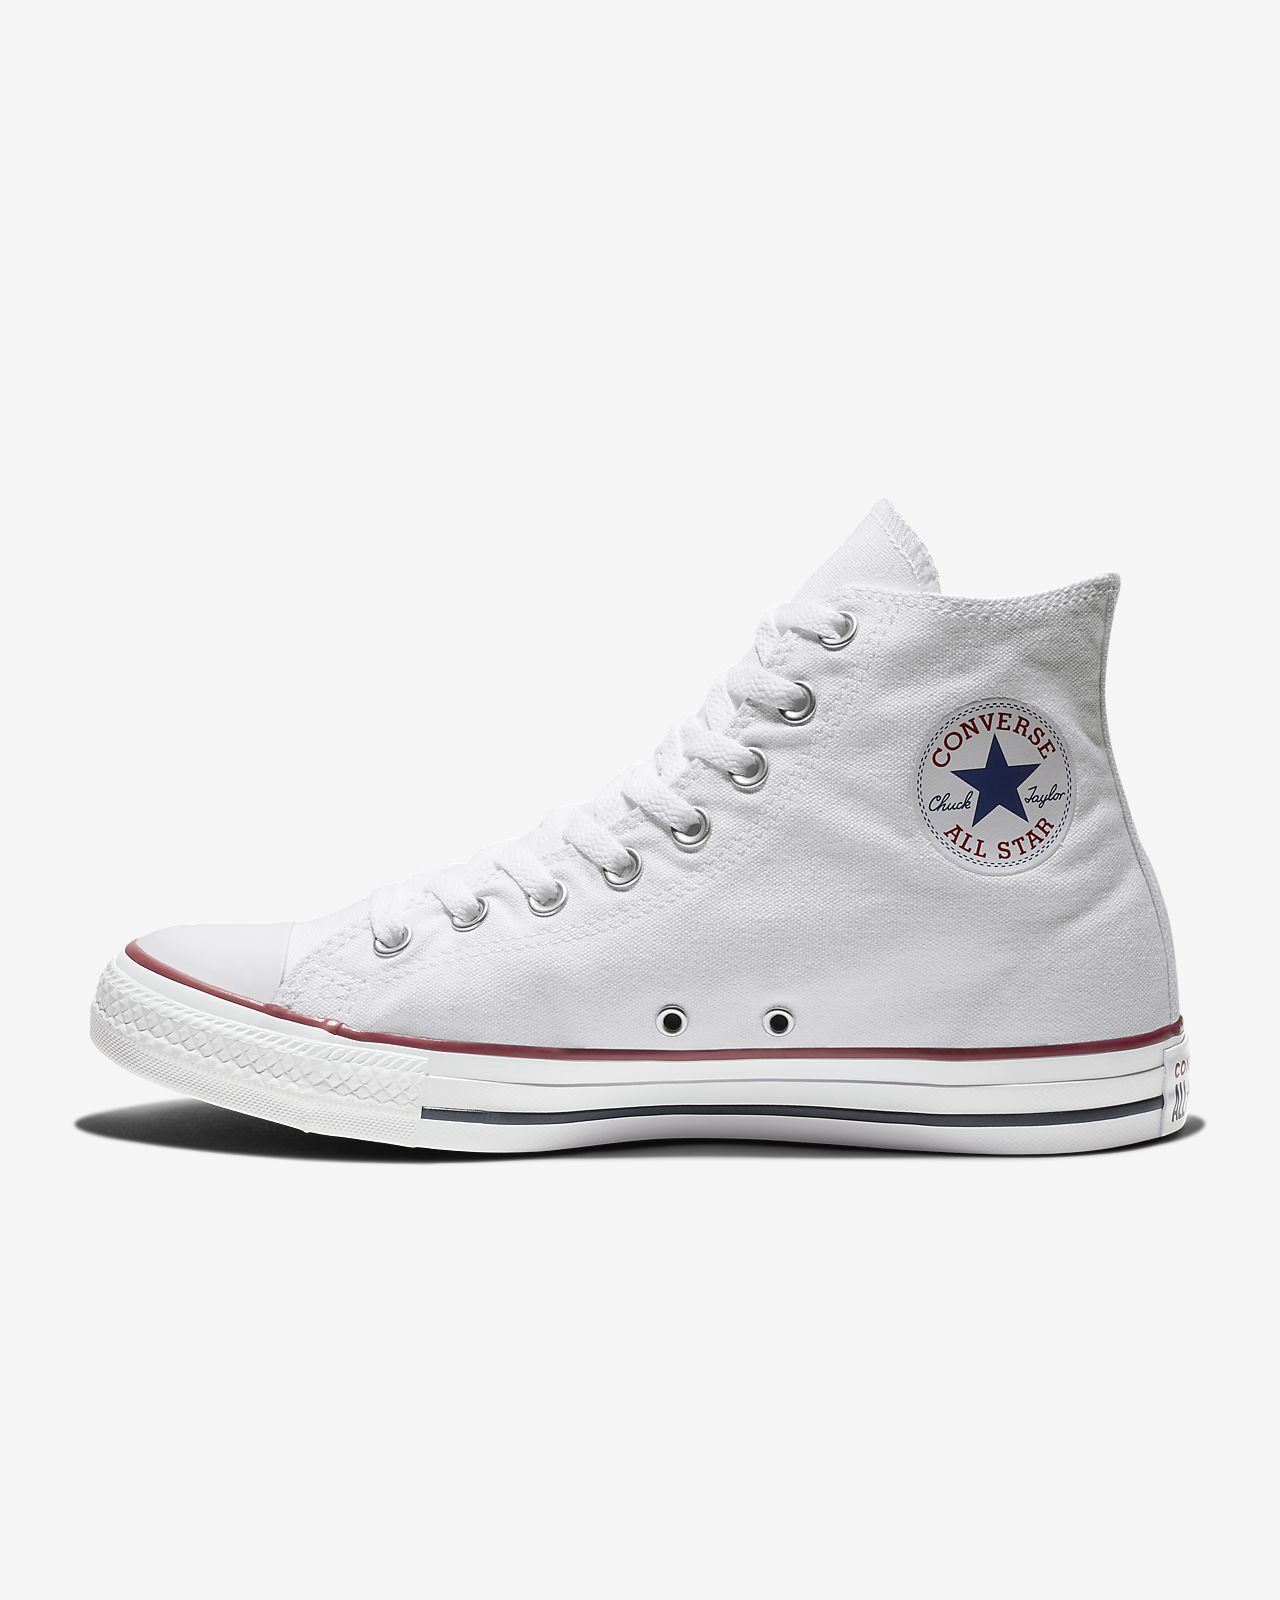 2converse chuck tailor all star